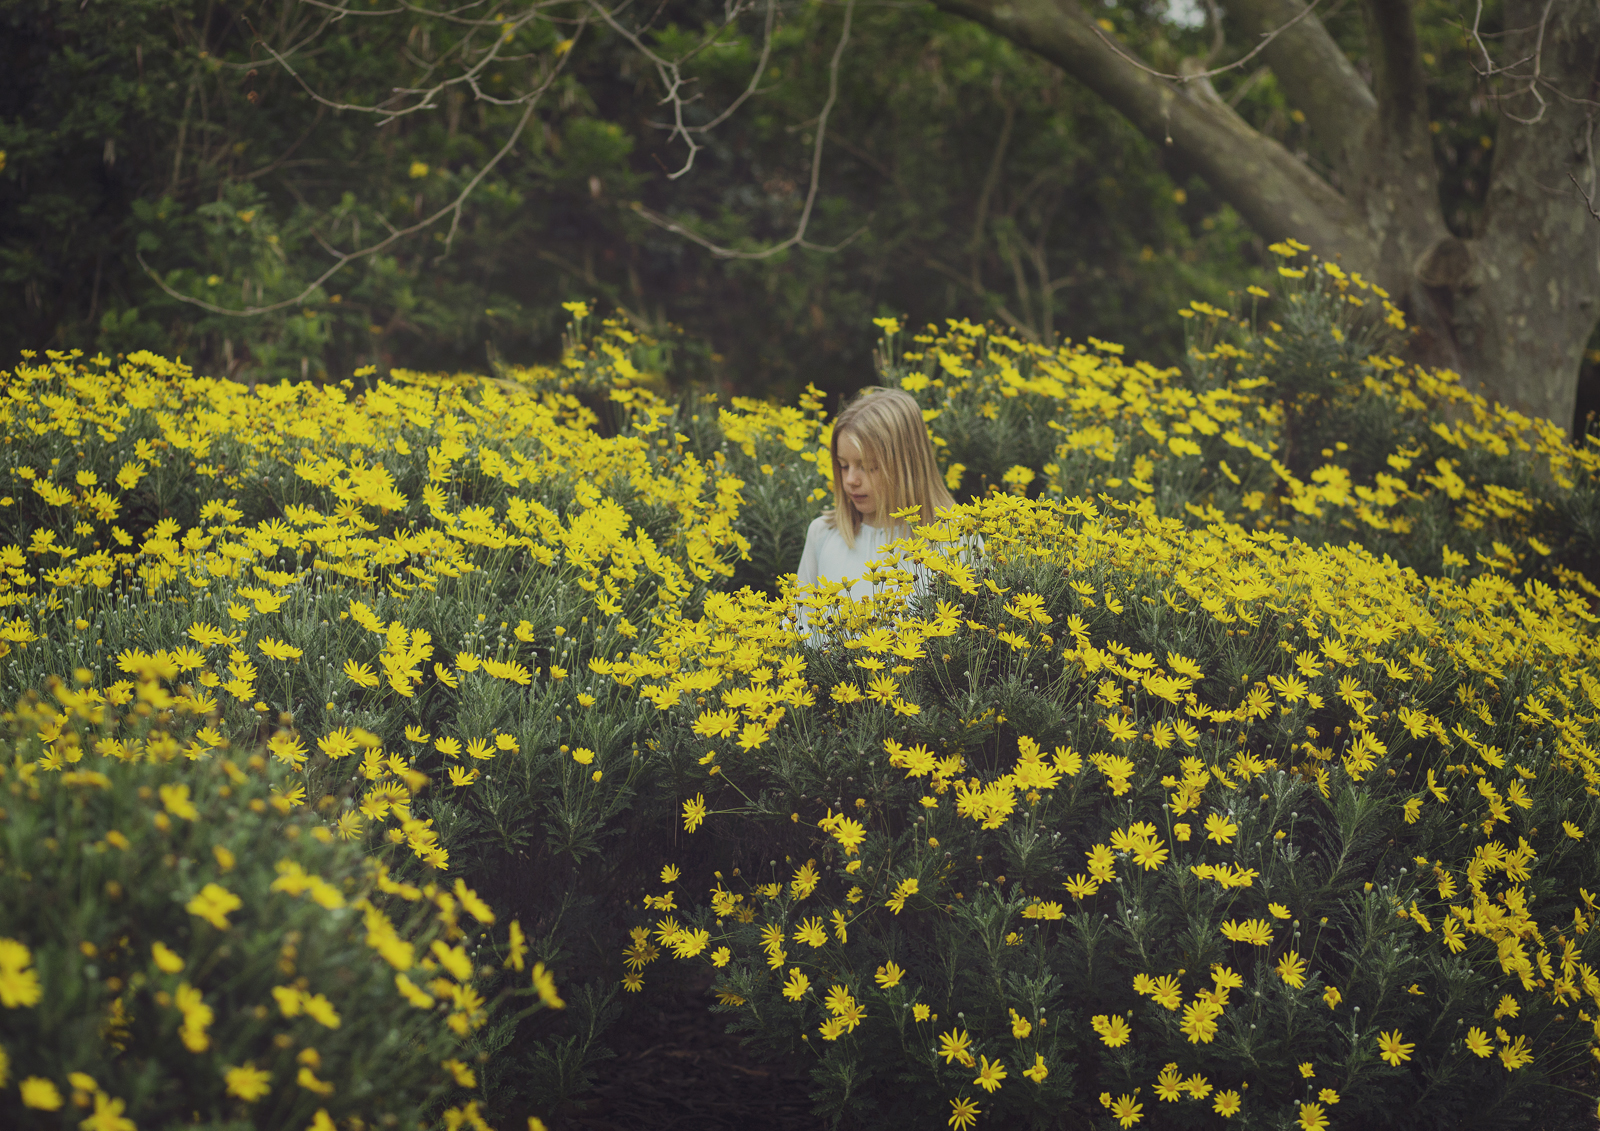 Child amongst the daisies!